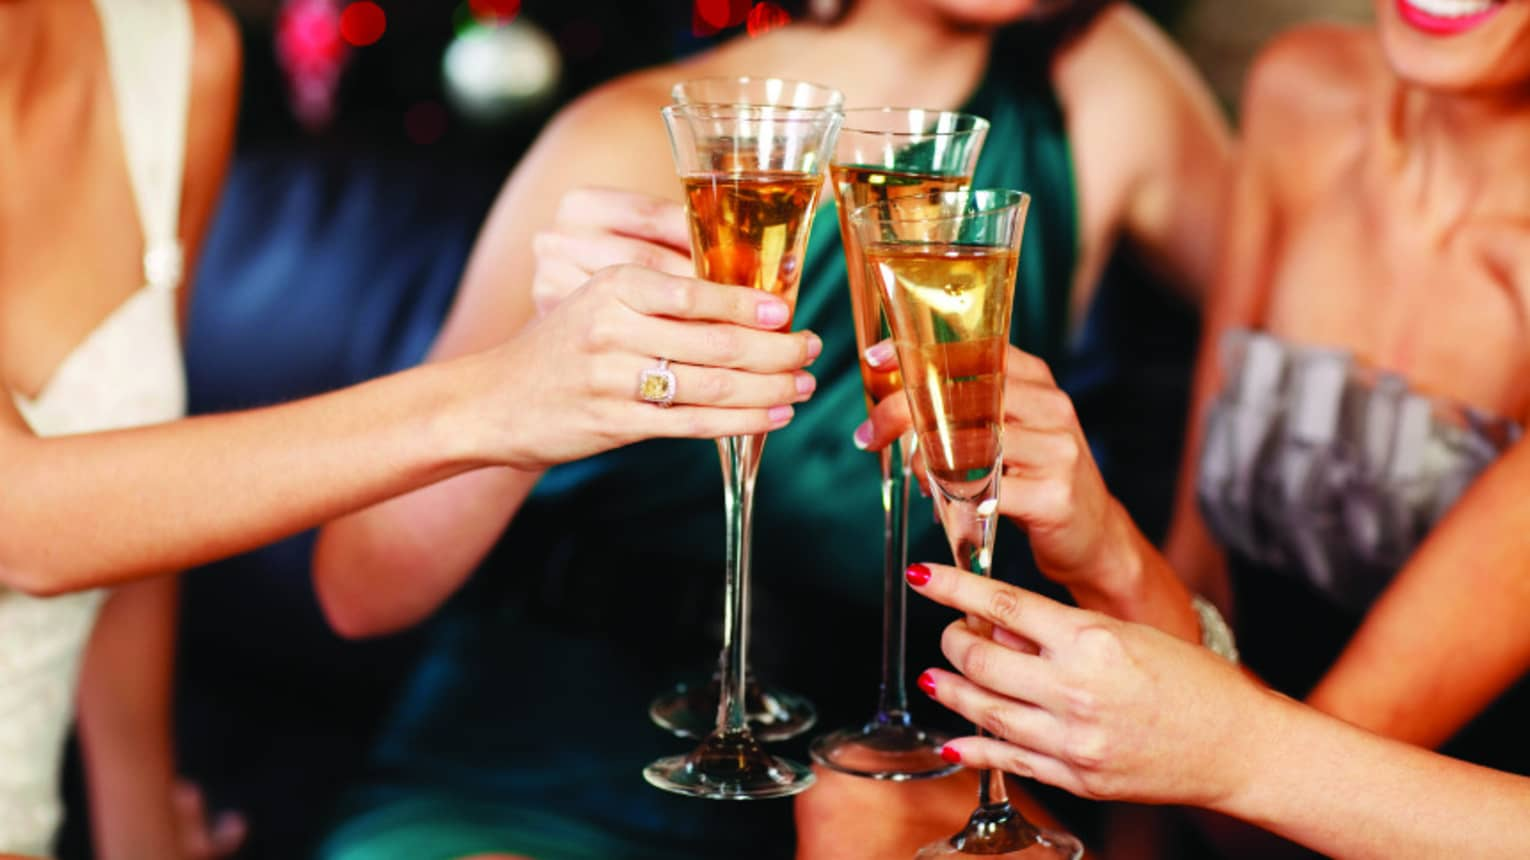 Close-up of women in evening gowns toasting with glasses of Champagne